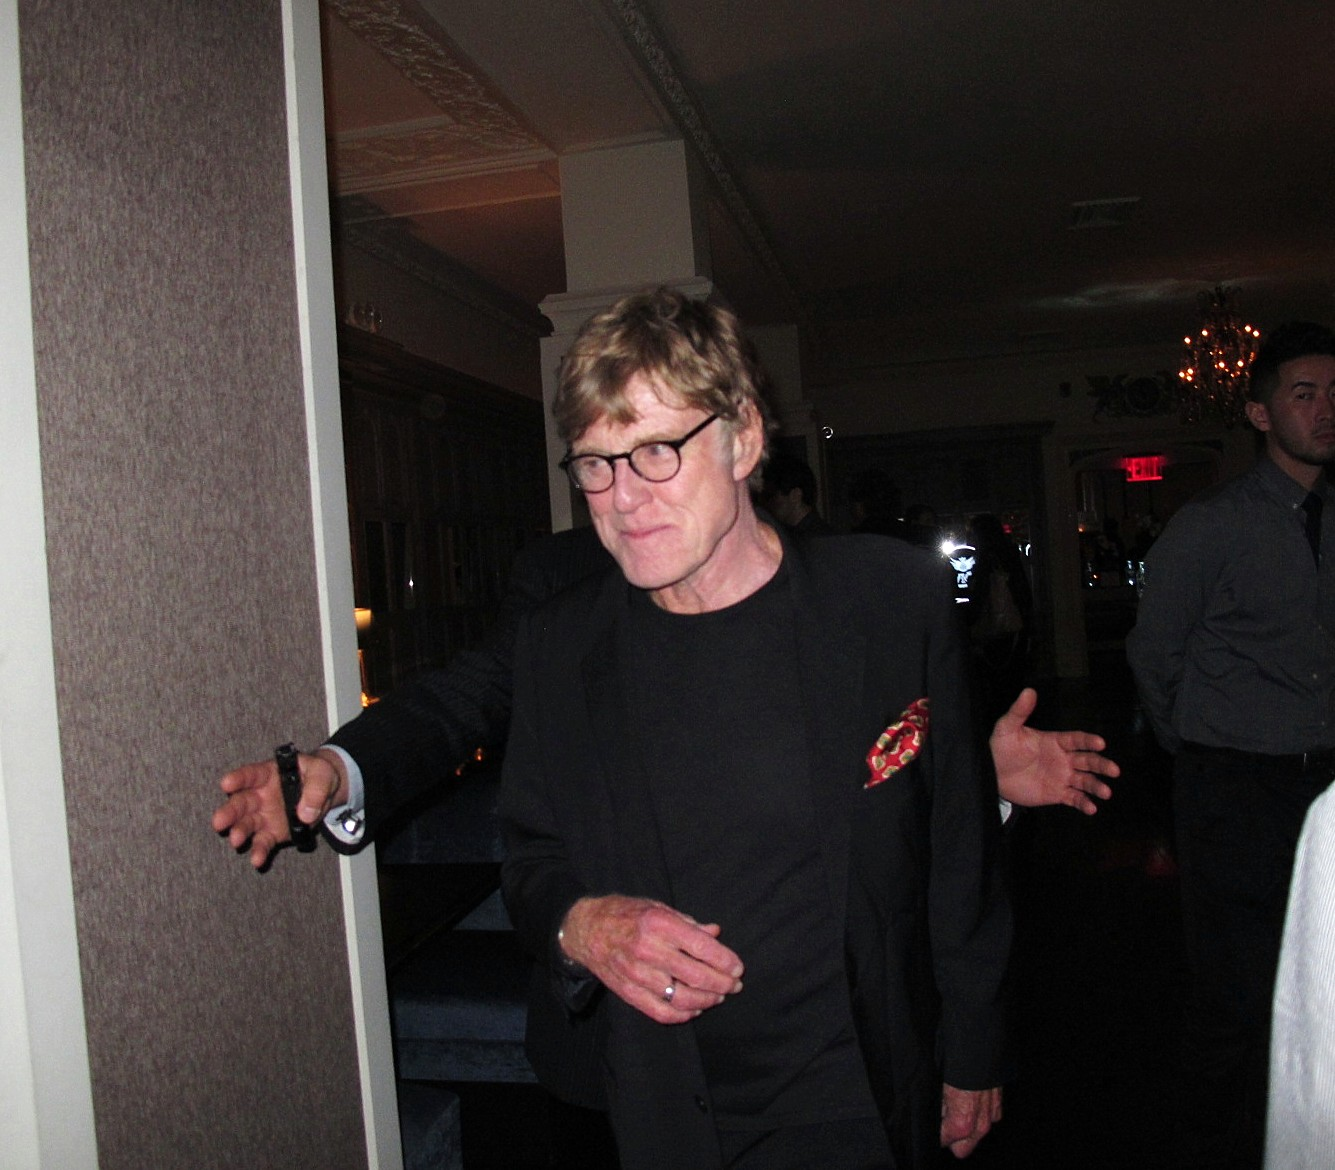 Robert Redford+The Company You Keep